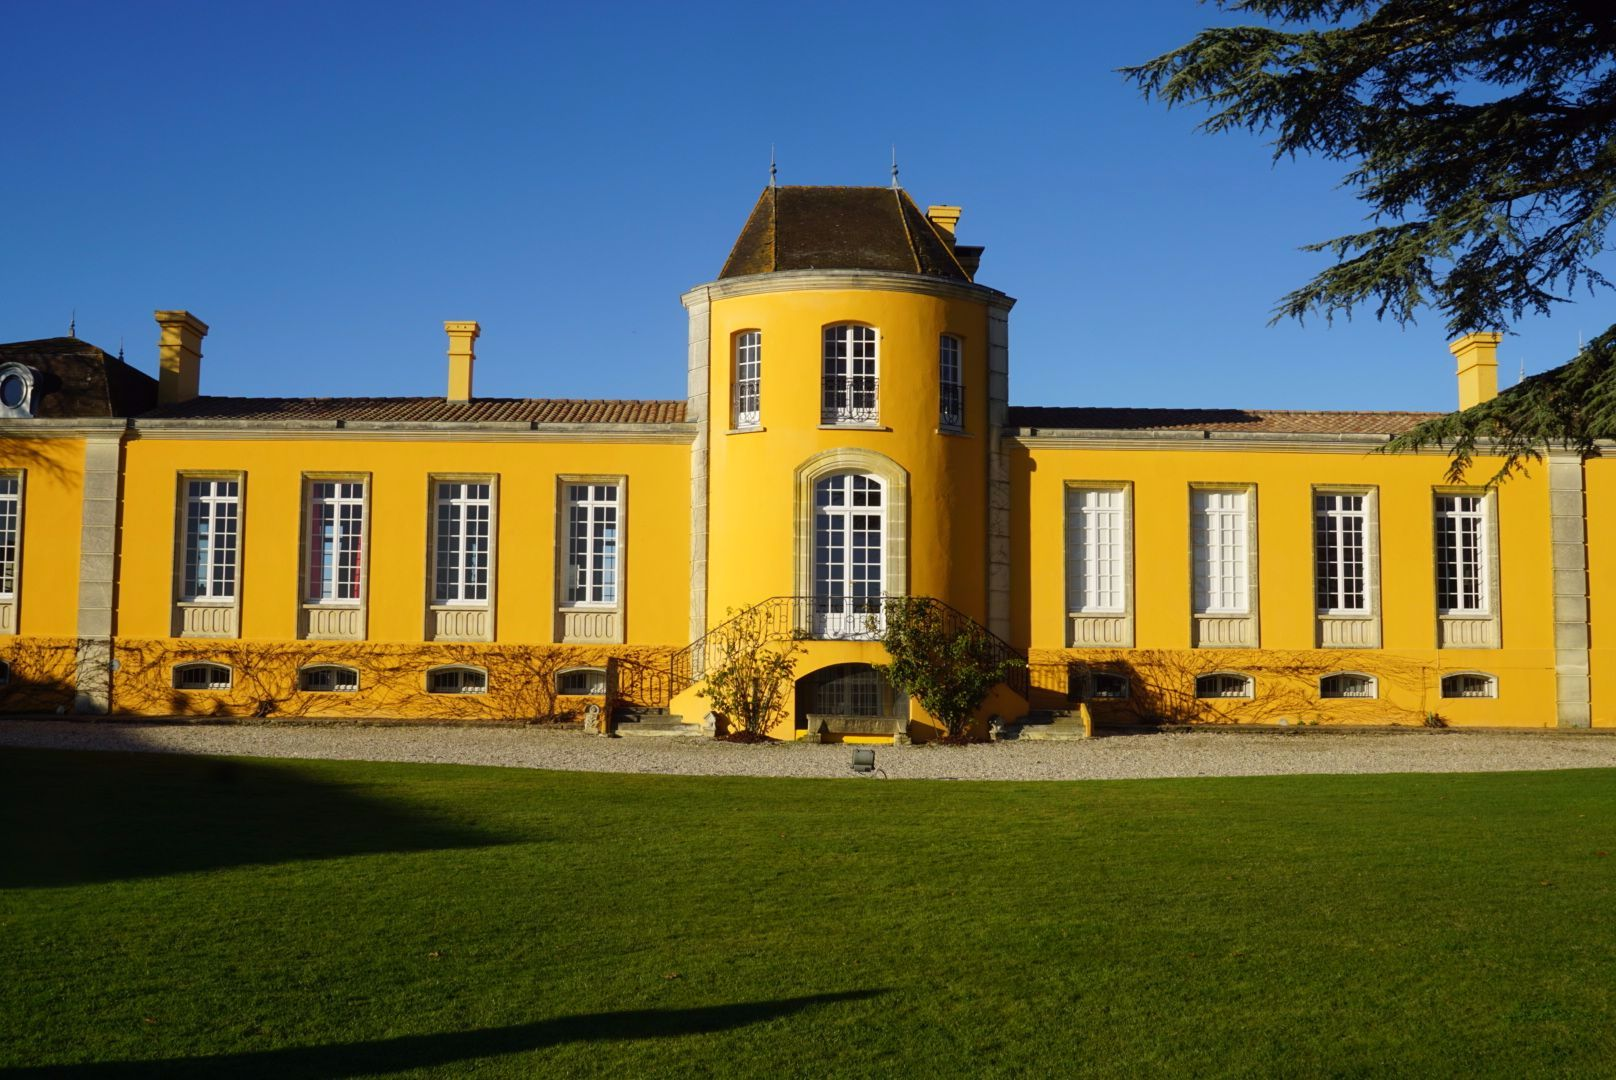 The signature yellow Chateau